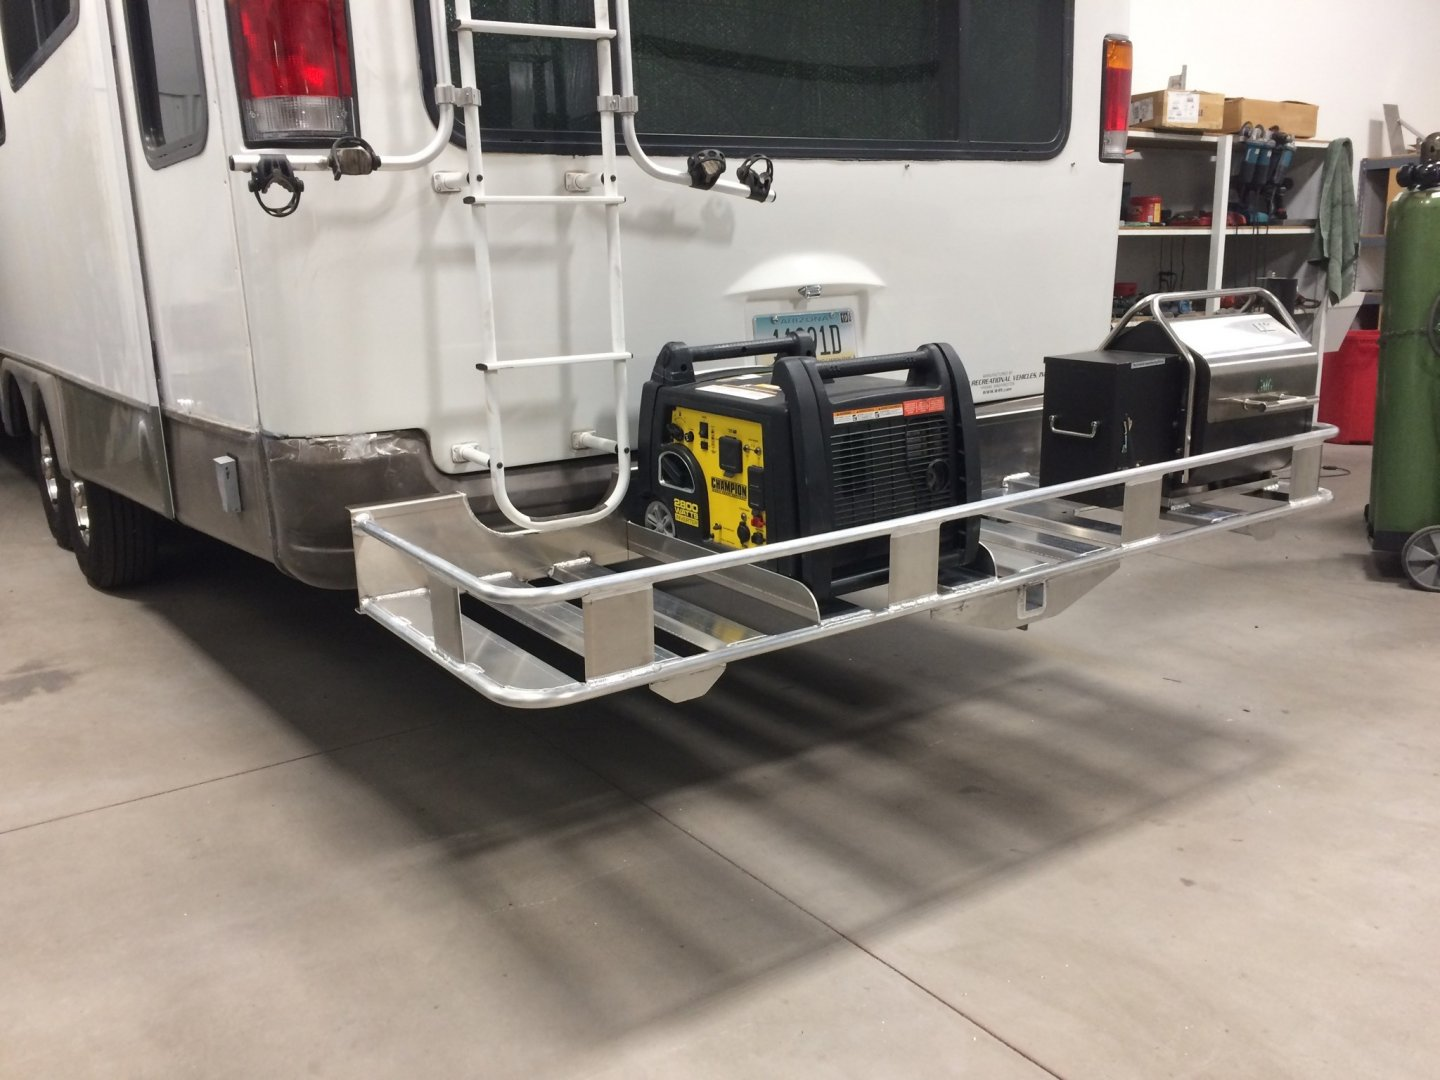 let's talk portable generators    | River Daves Place